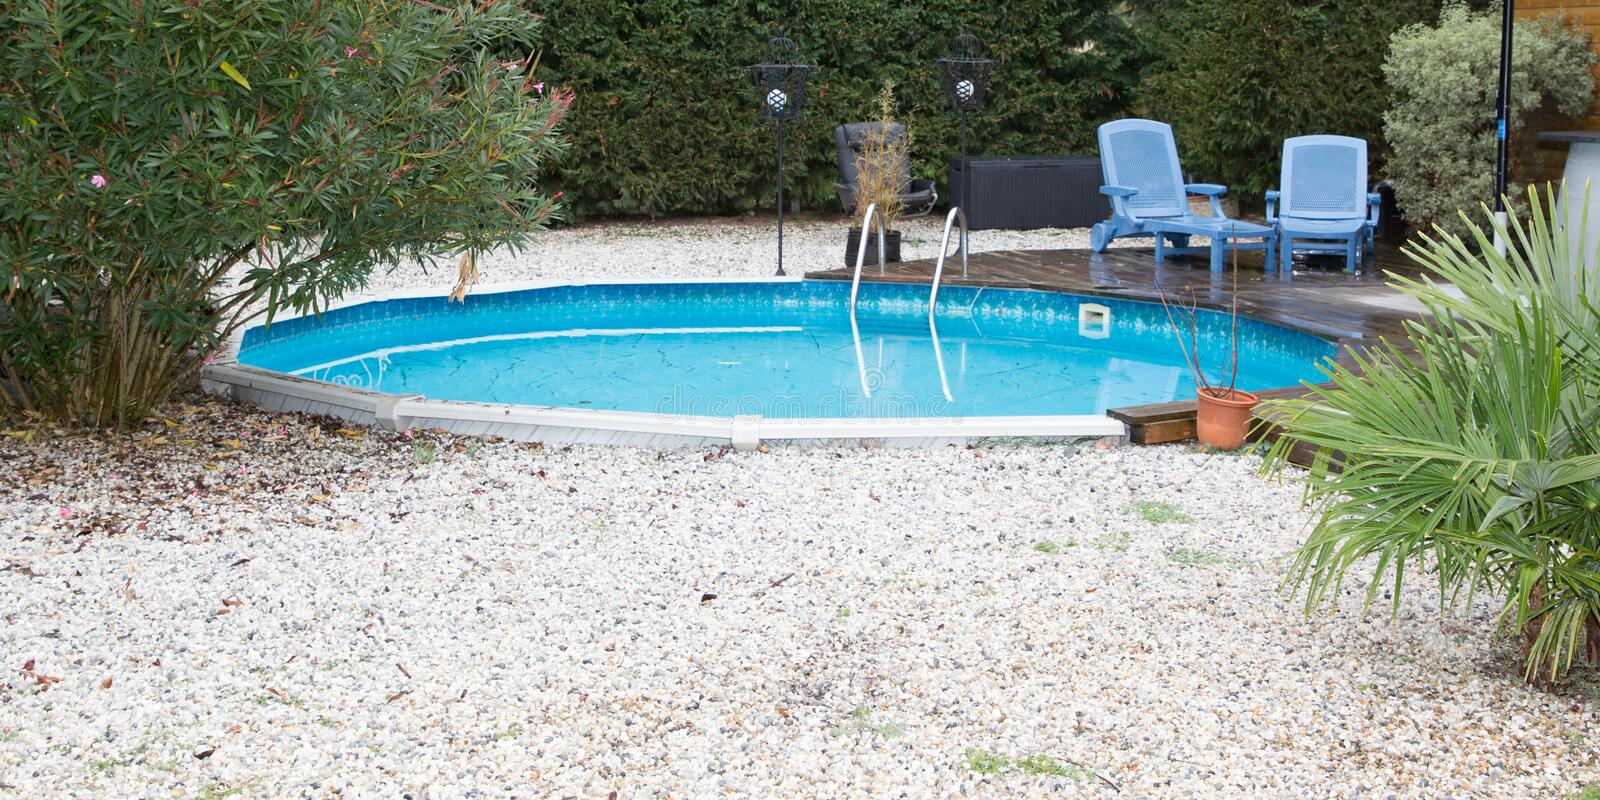 Small round swimming pool in home garden. Pool in home garden at home royalty free stock photography